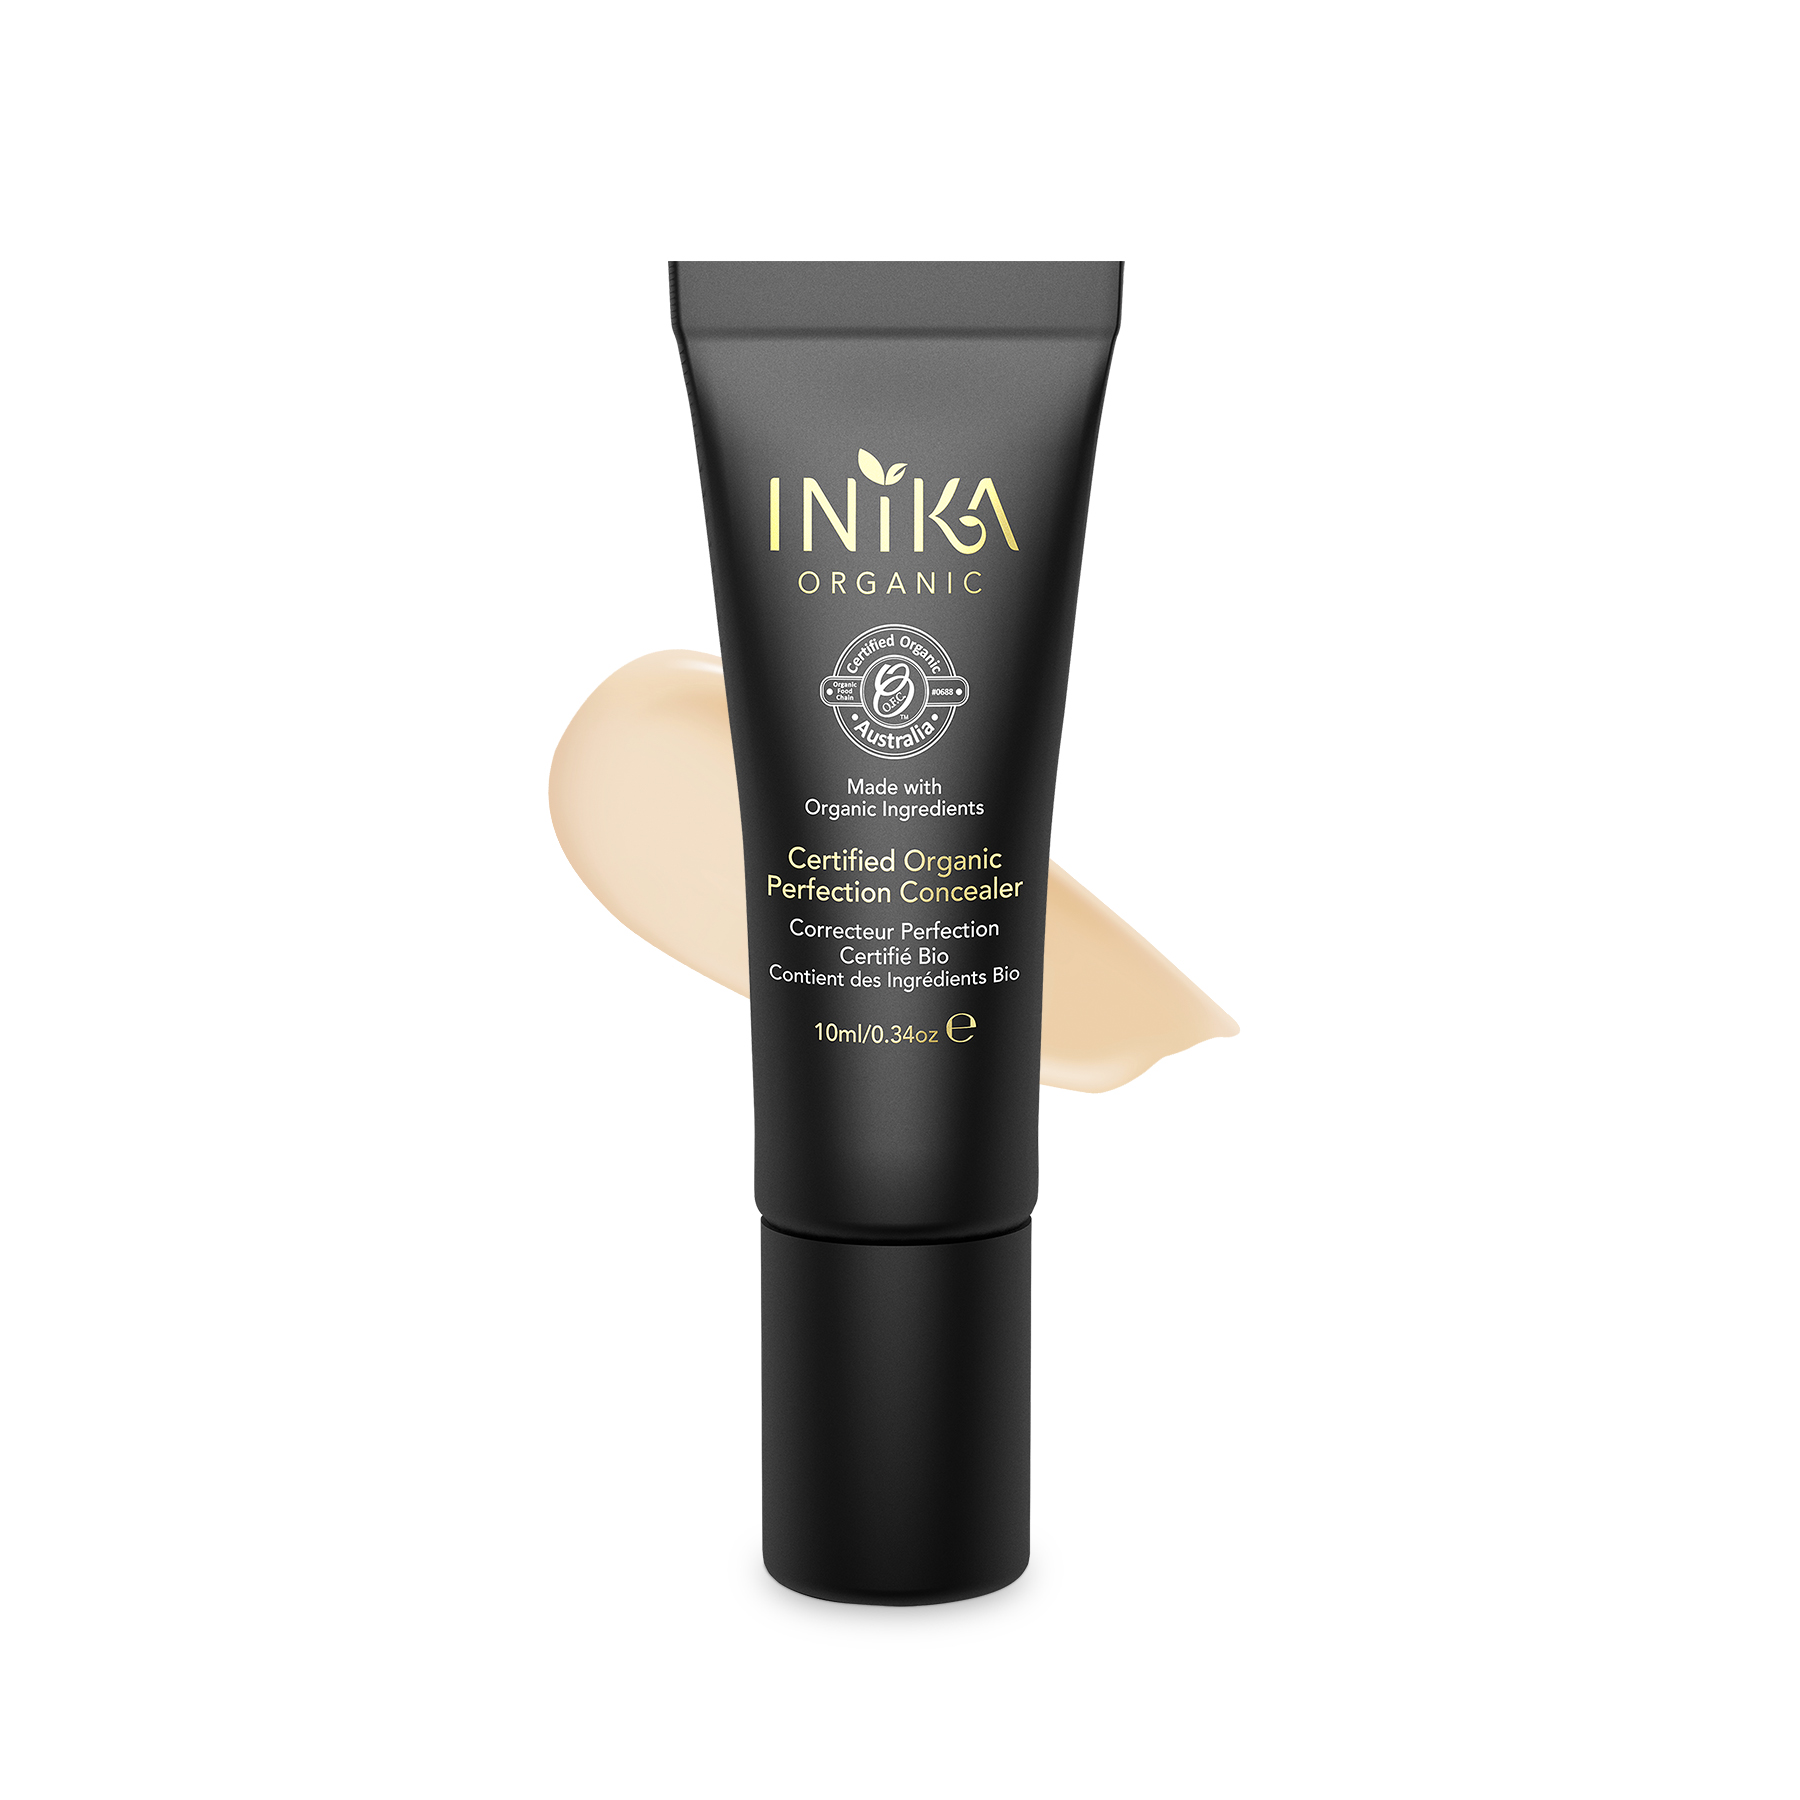 INIKA Certified Organic Perfection Concealer Light 10ml With Product